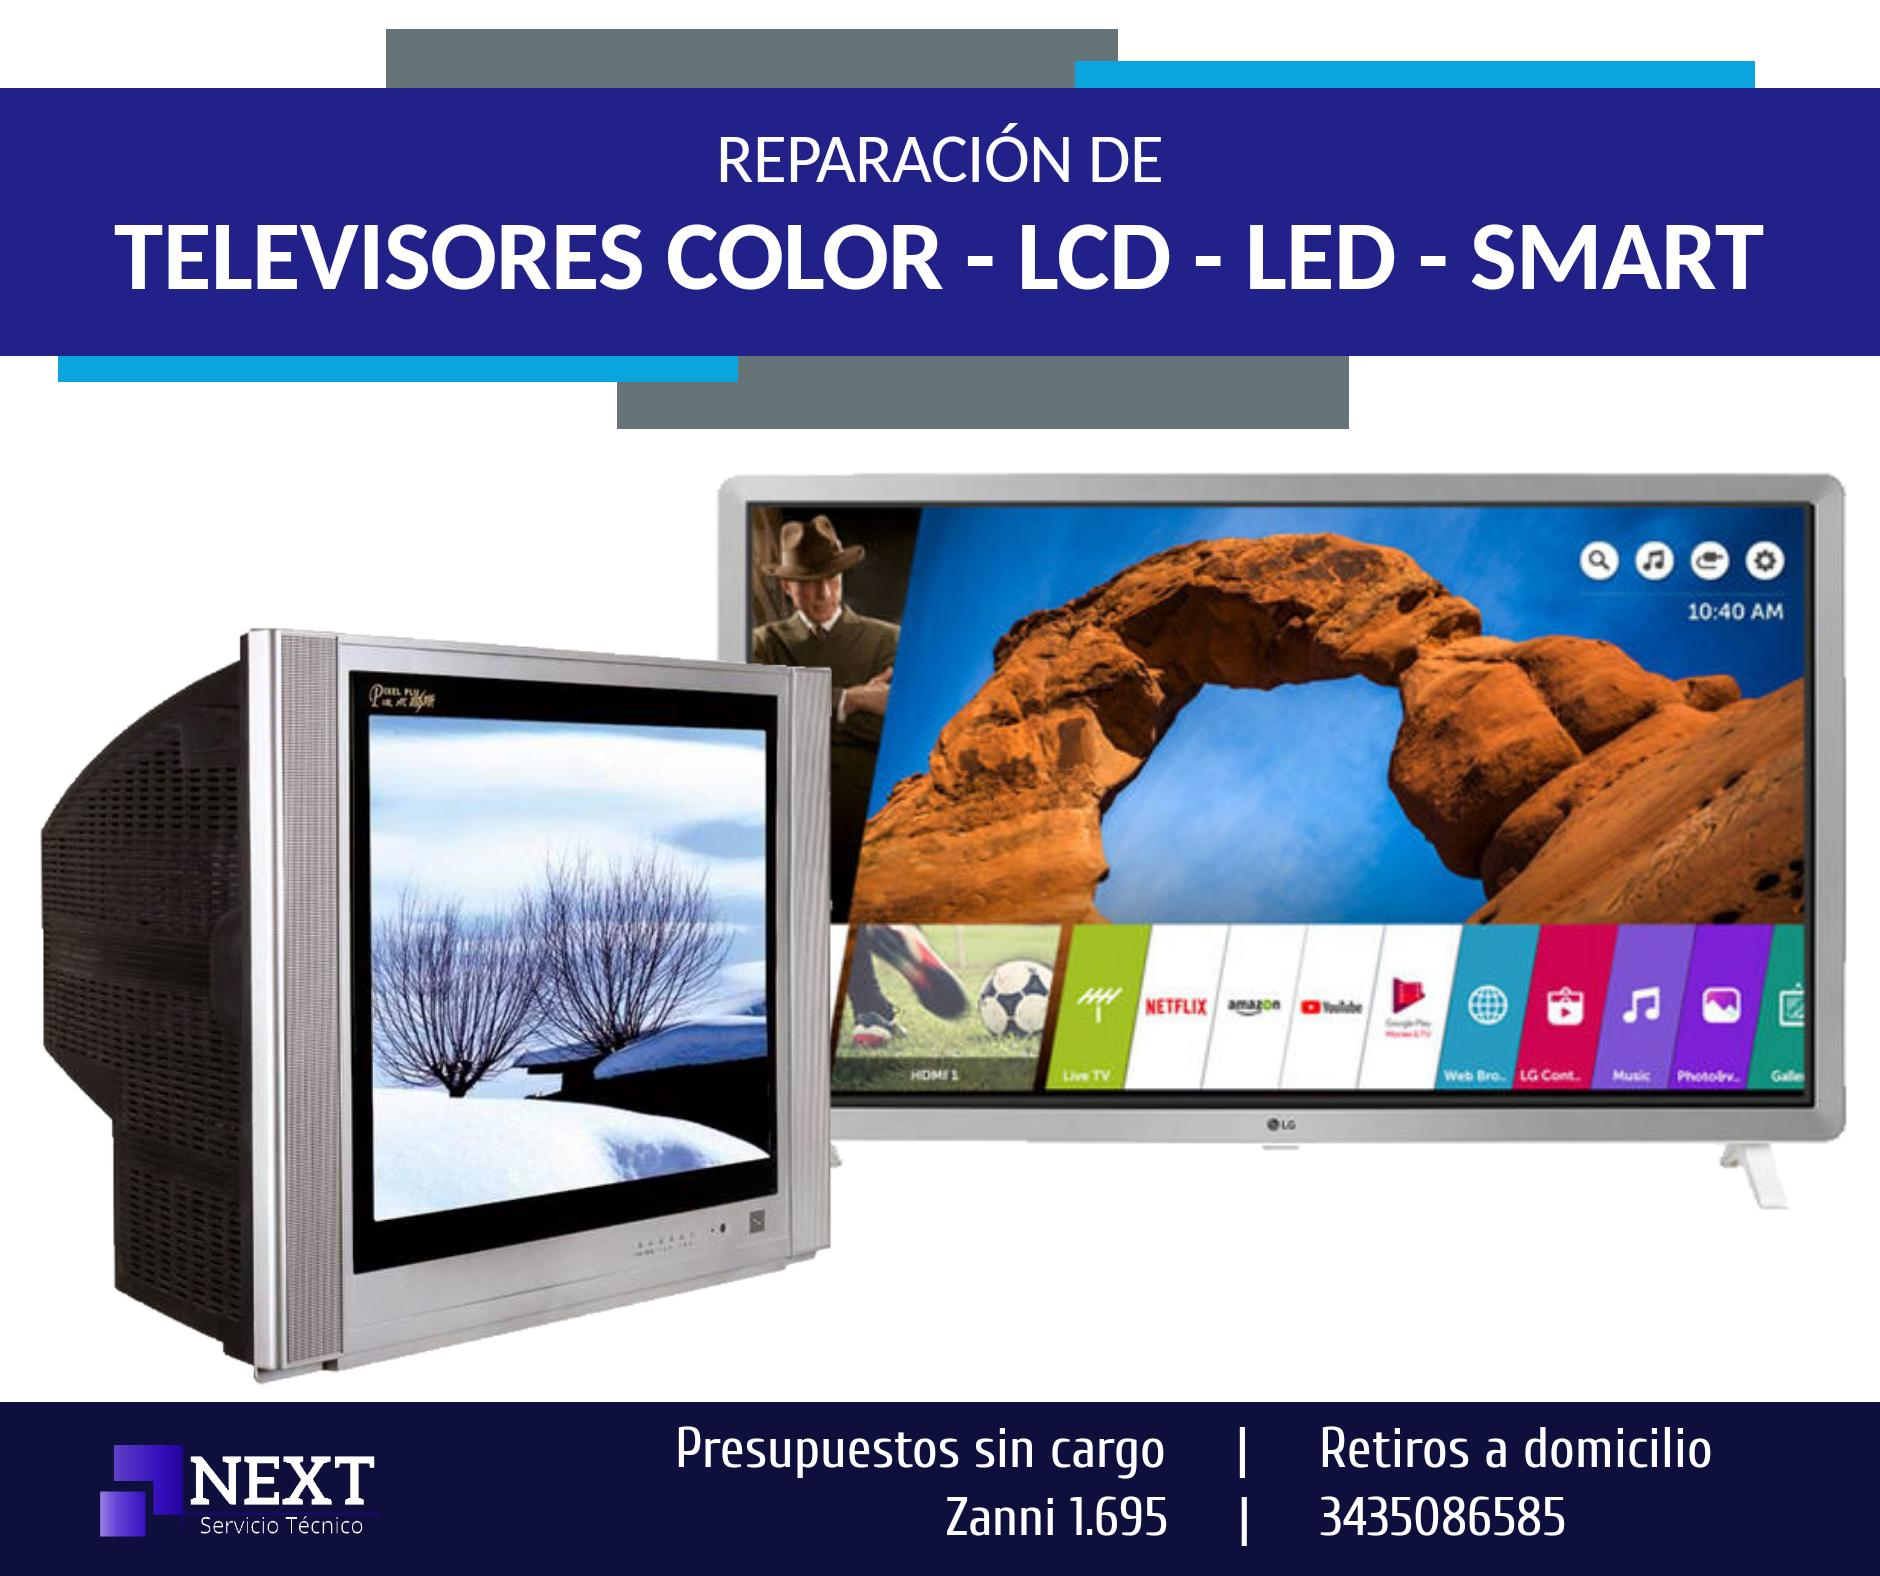 Reparación de TV COLOR, LCD, LED, SMART- Presupuestos sin cargo